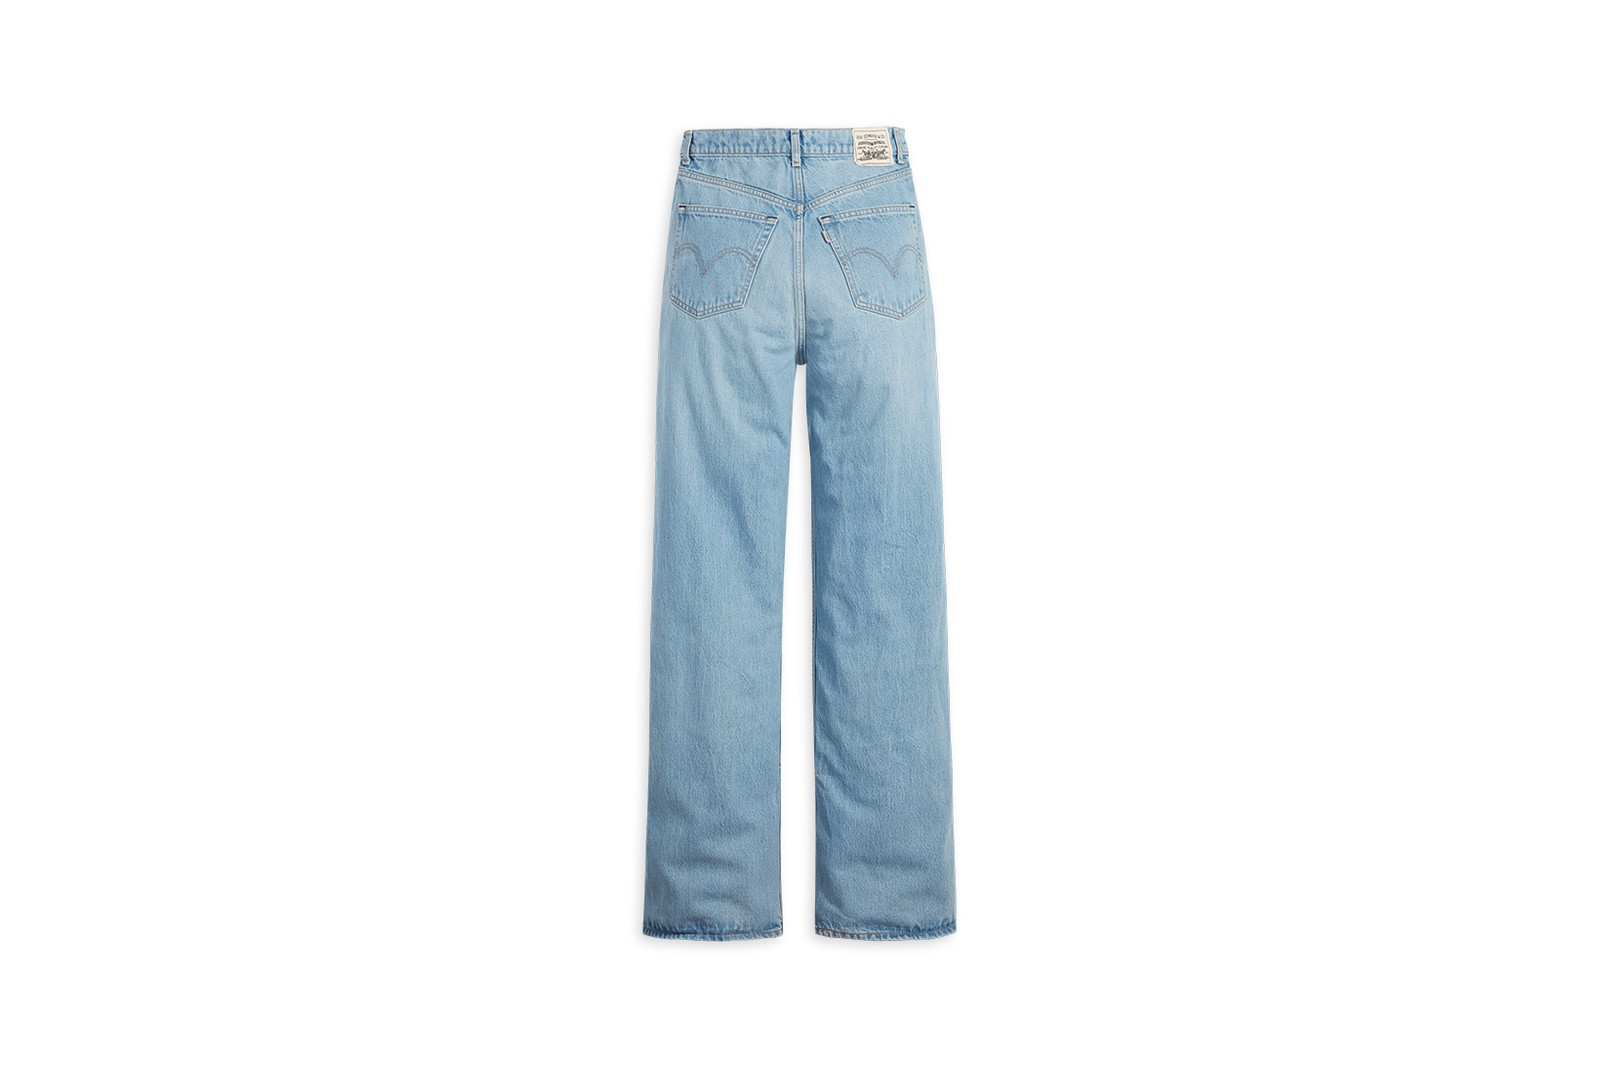 levis wellthread sustainable recycled jeans denim womens high loose mens 502